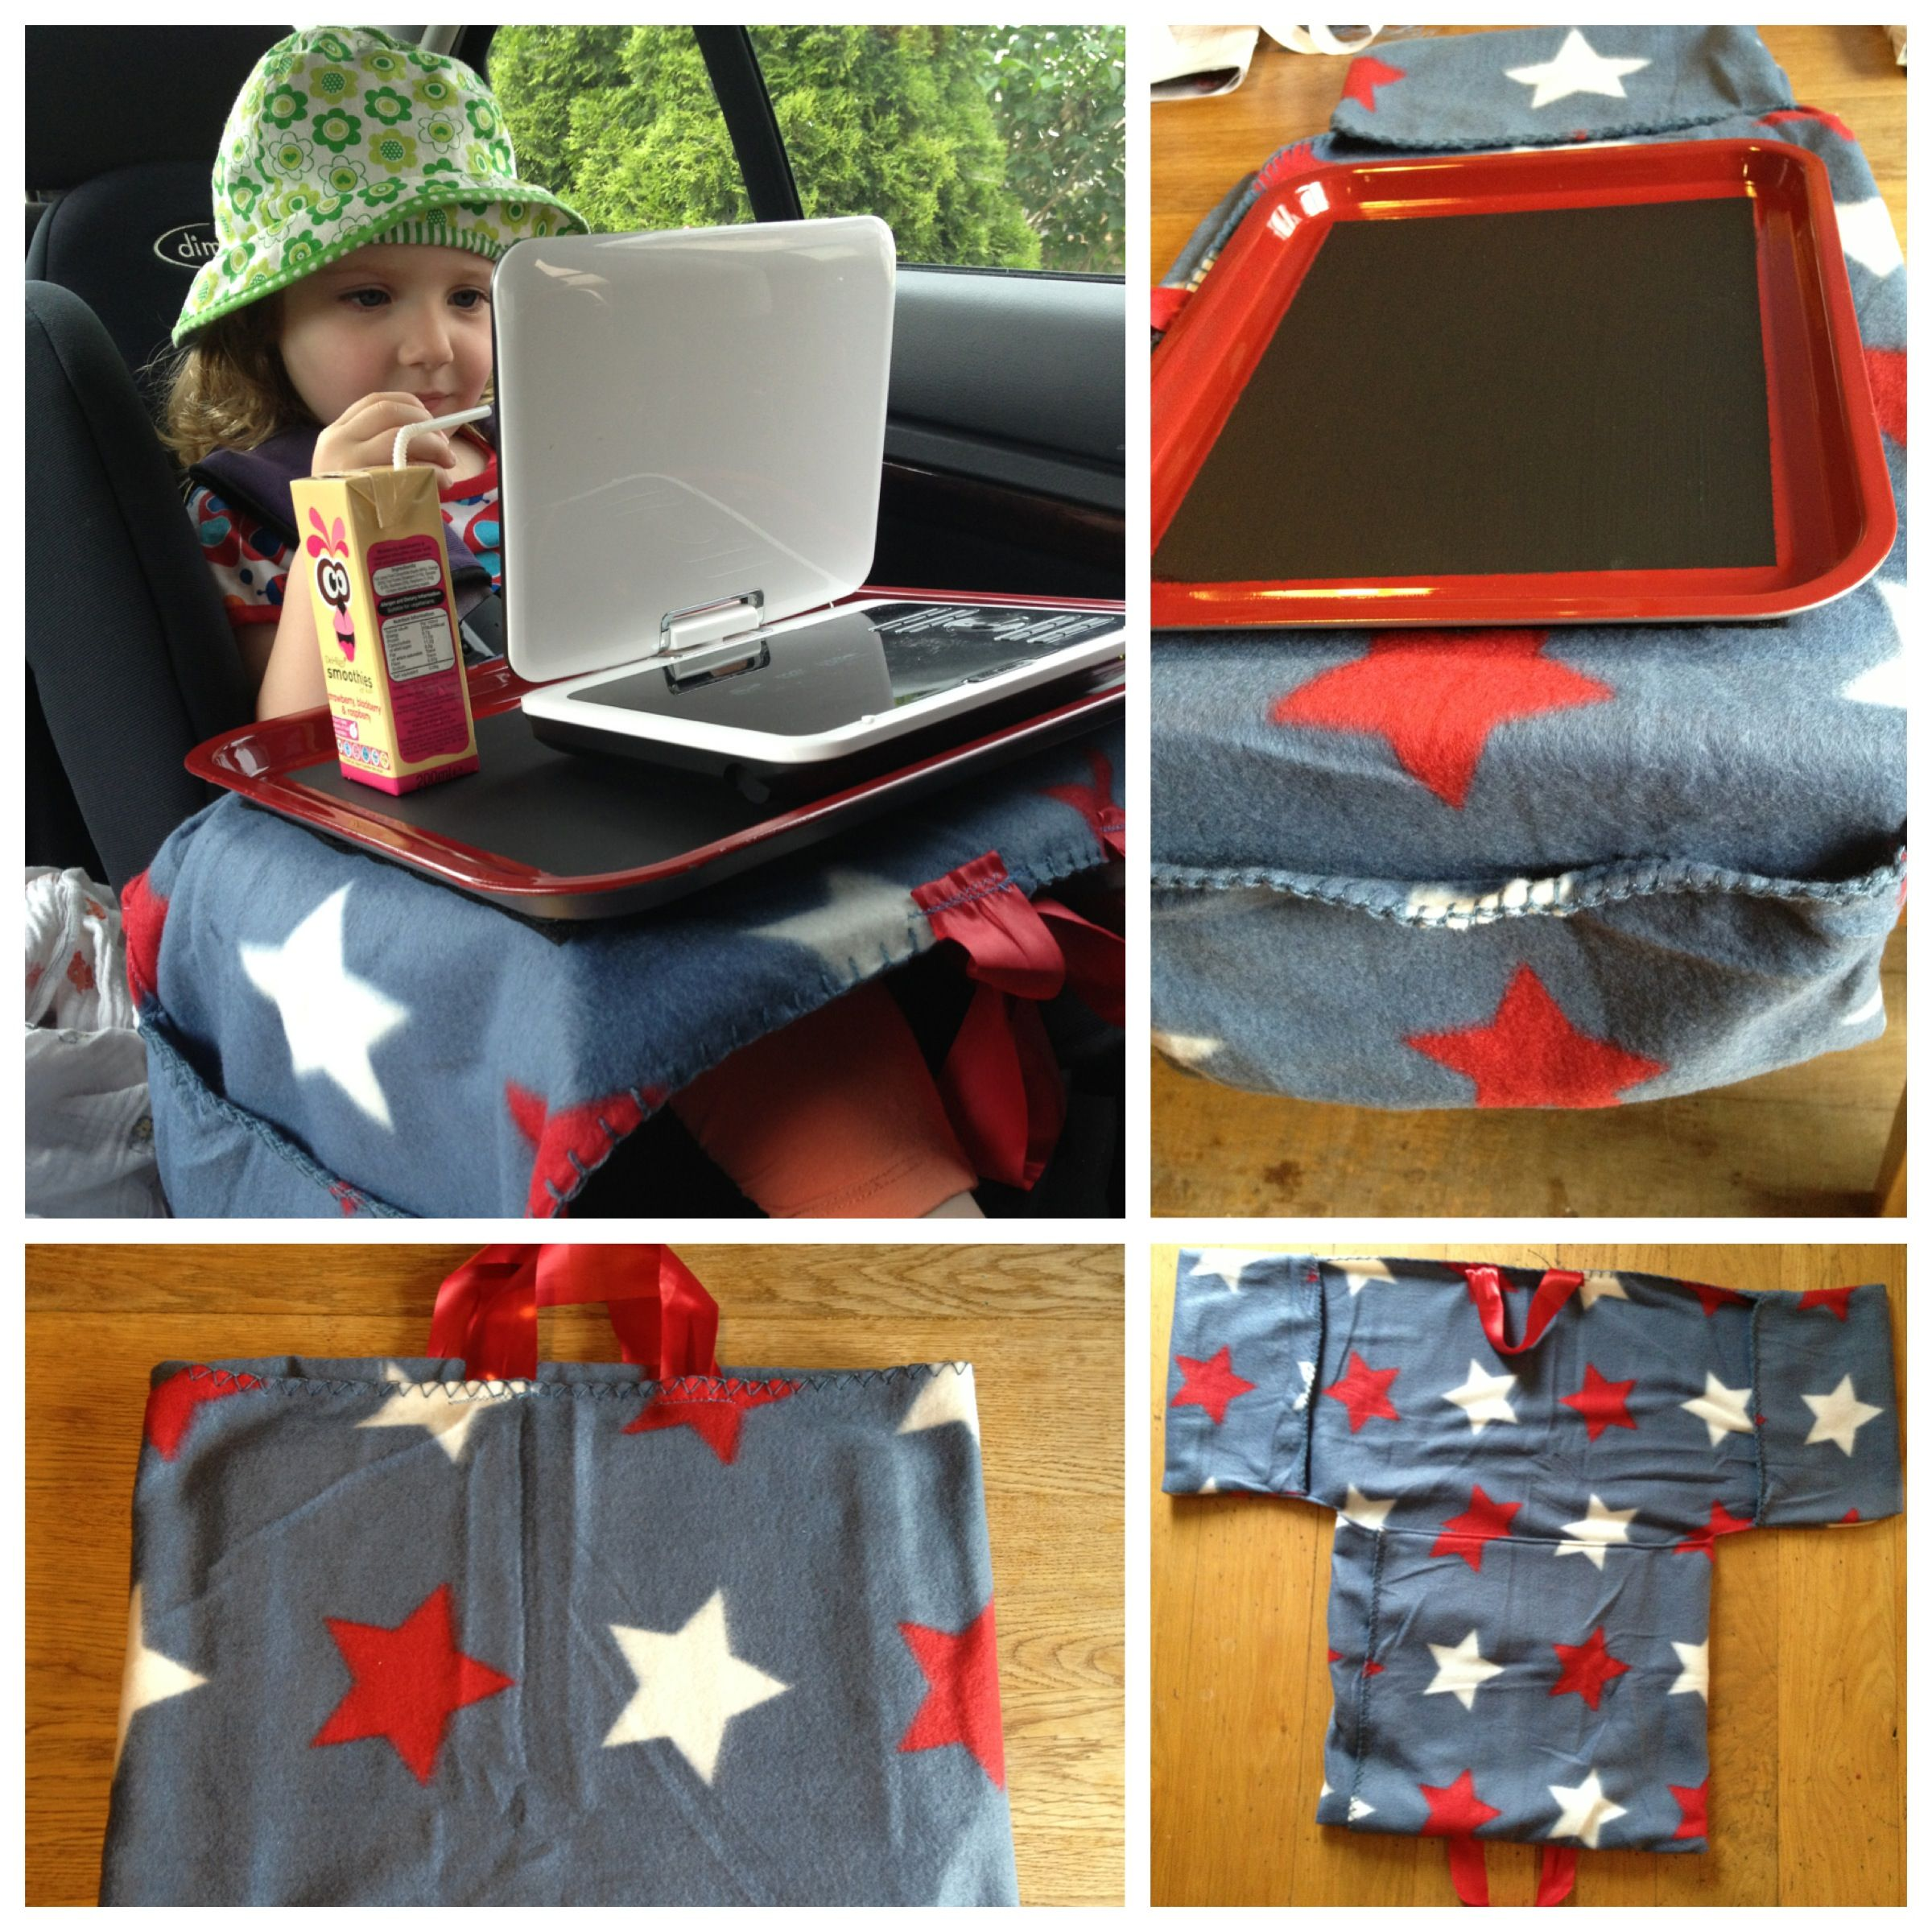 DIY Tray Table For Car Seat Baking Painted With Blackboard Paint And Velcroed To Fleece Pillow Side Pockets Made From Cheap Throw